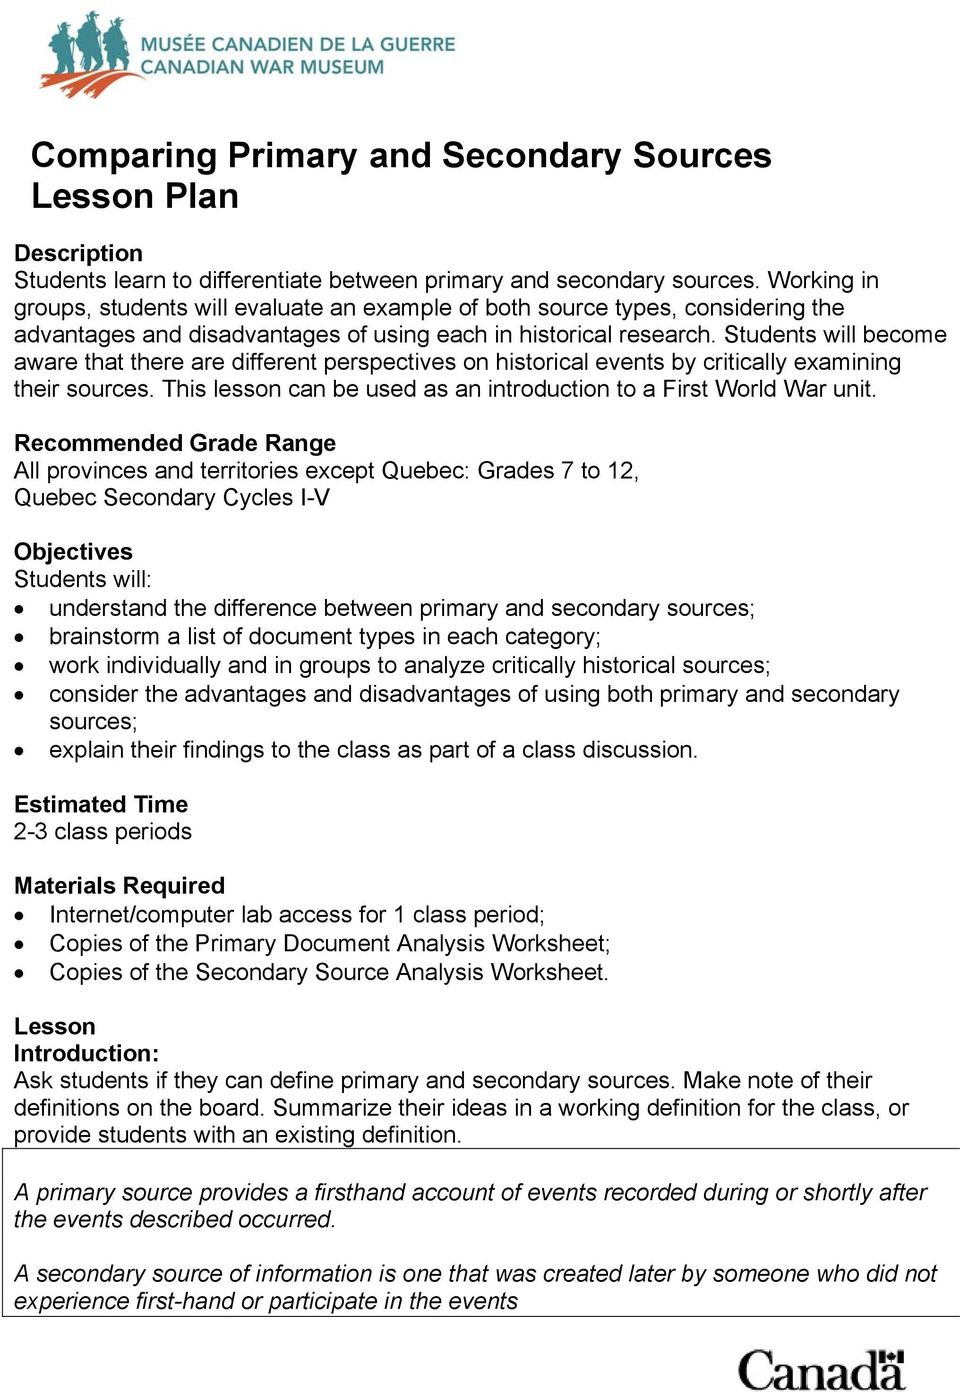 Comparing Primary and Secondary Sources Lesson Plan - PDF